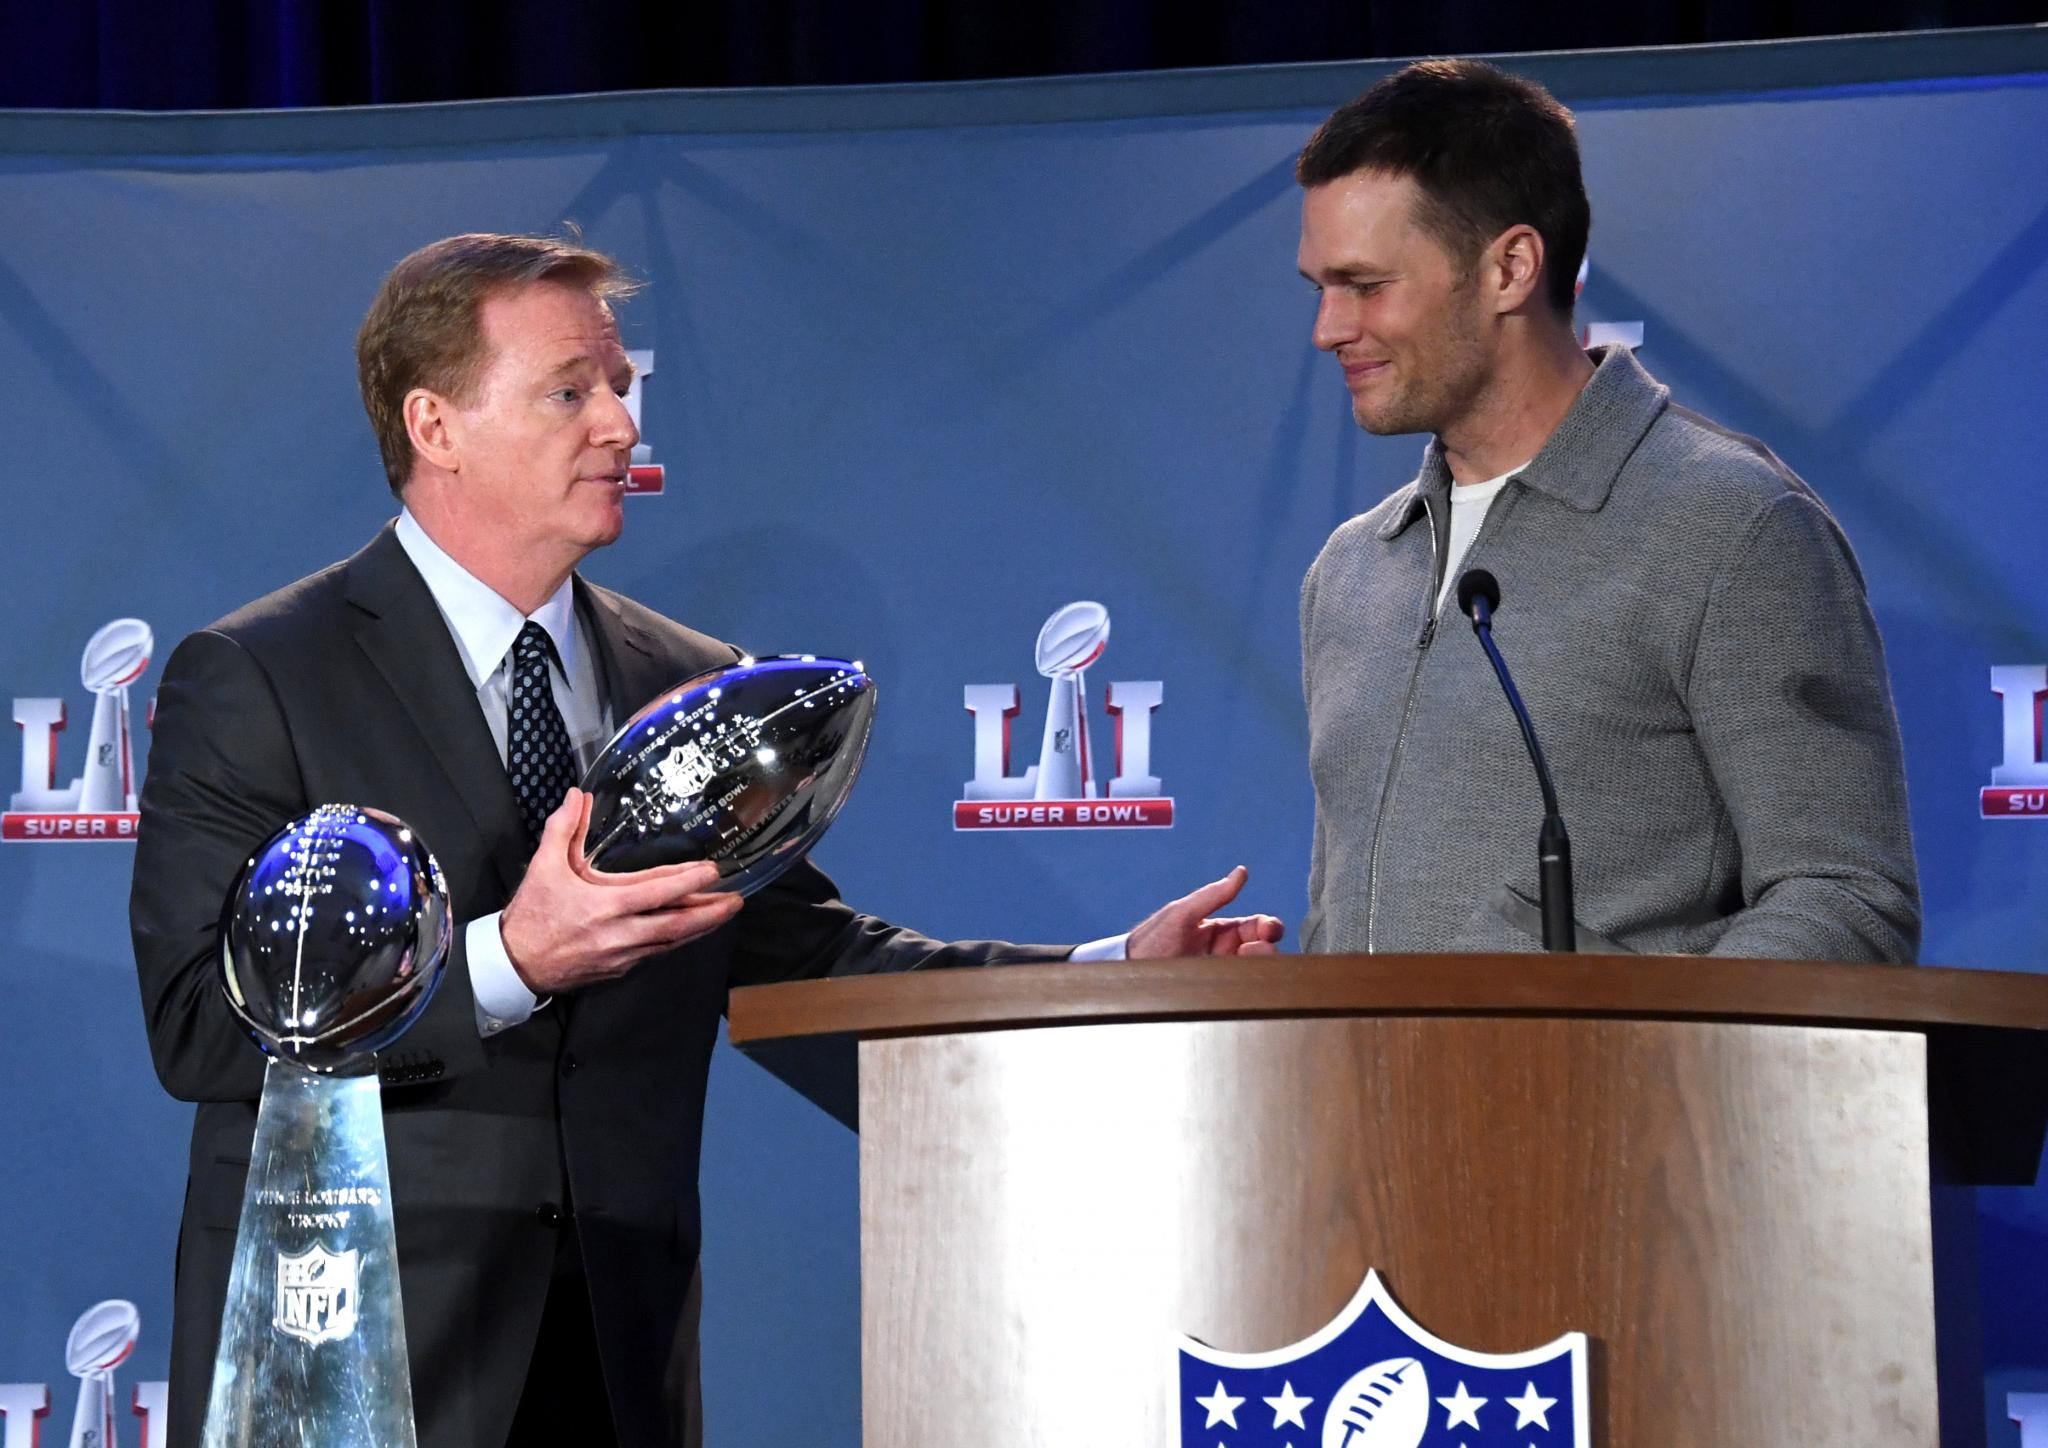 Reimer: Three years after trying to ruin Tom Brady, Roger Goodell is now relying on Patriots to save ...